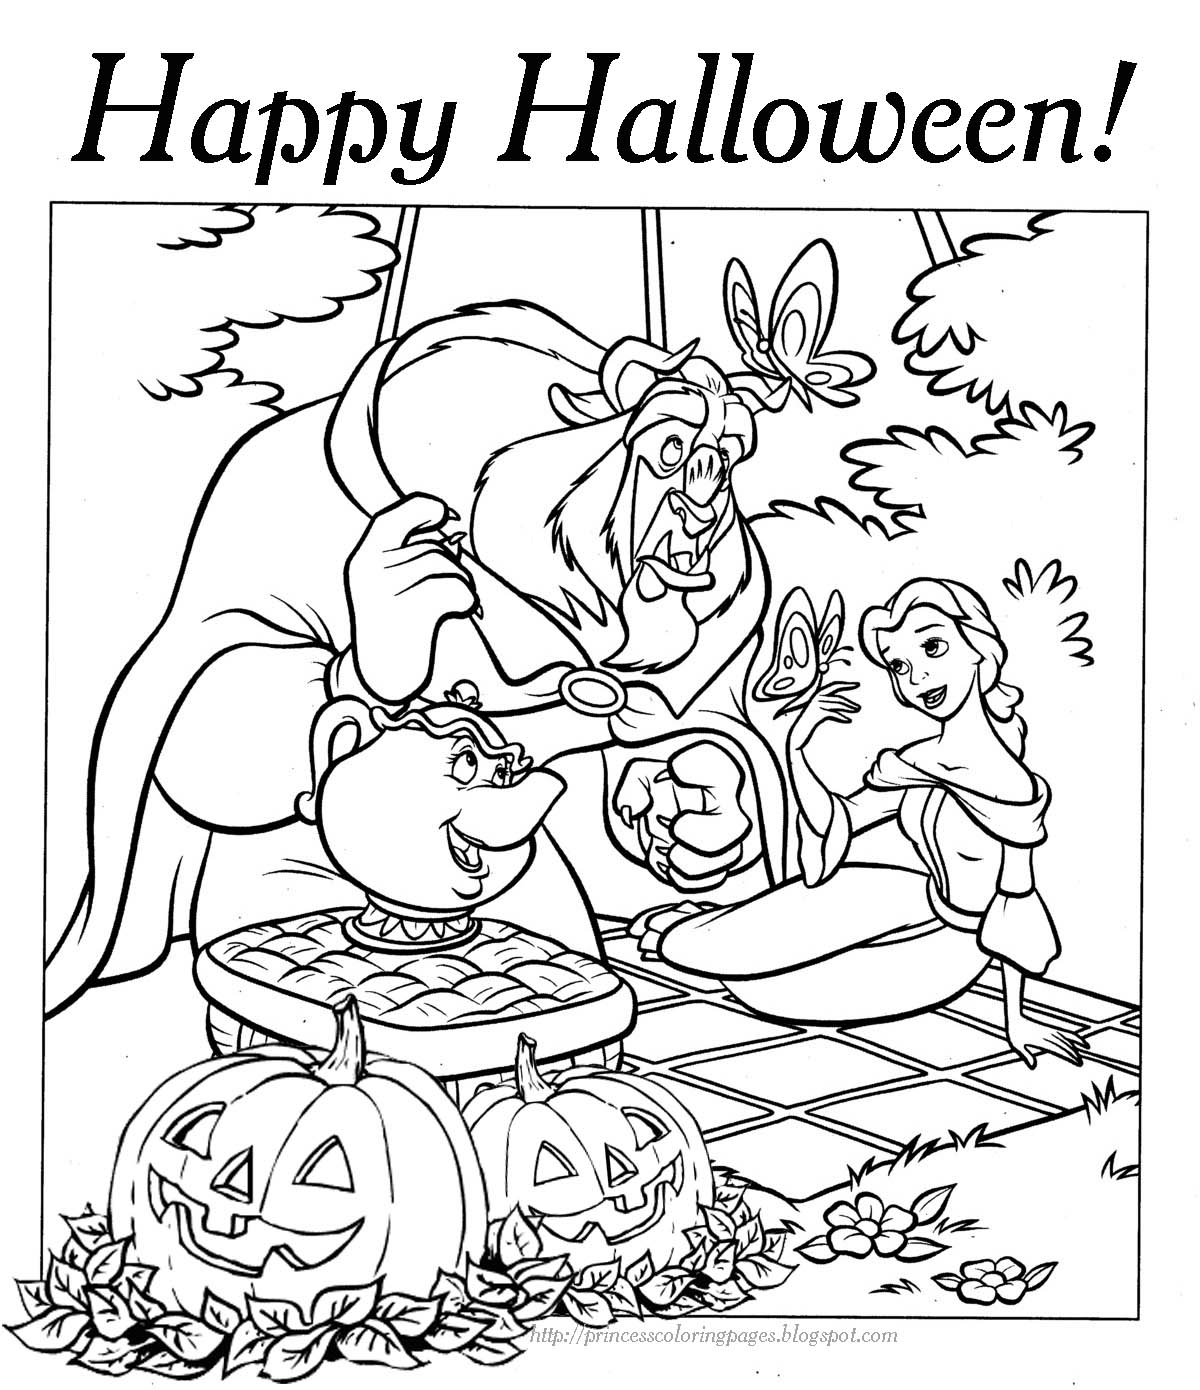 coloring sheets for halloween free printable halloween coloring pages for adults best for halloween coloring sheets